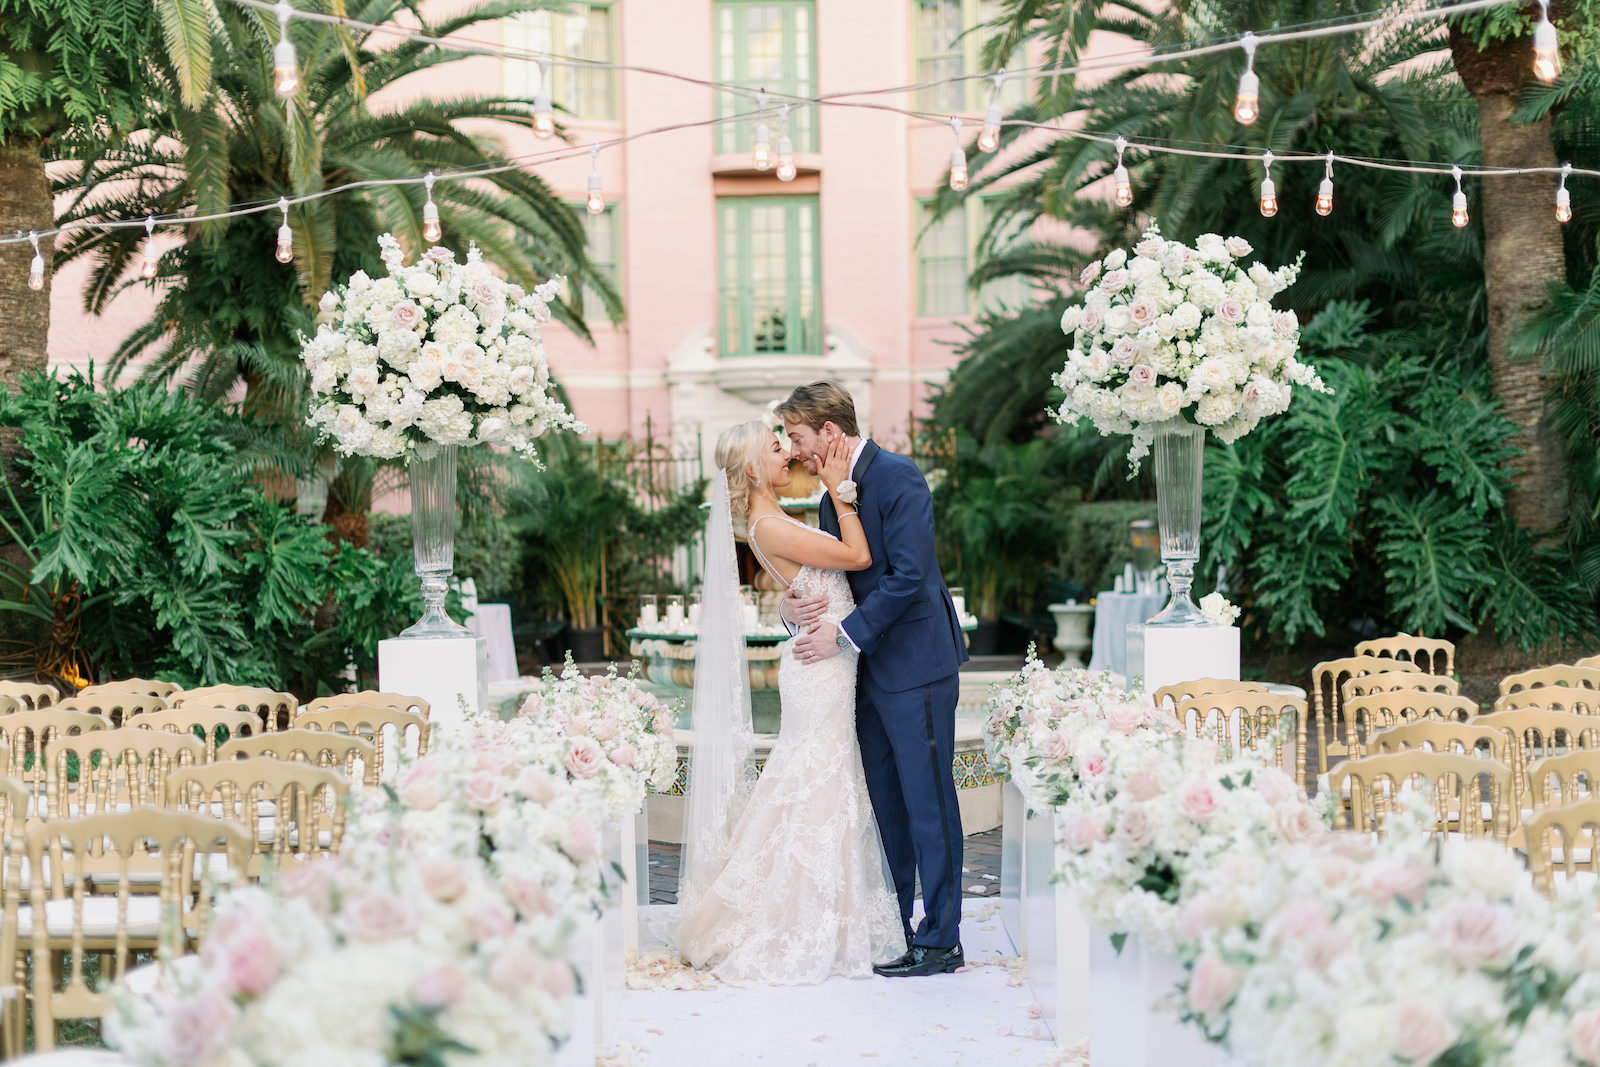 The Vinoy Renaissance St Petersburg Resort & Golf Club Archives - Marry Me  Tampa Bay | Local, Real Wedding Inspiration & Vendor Recommendation &  Reviews